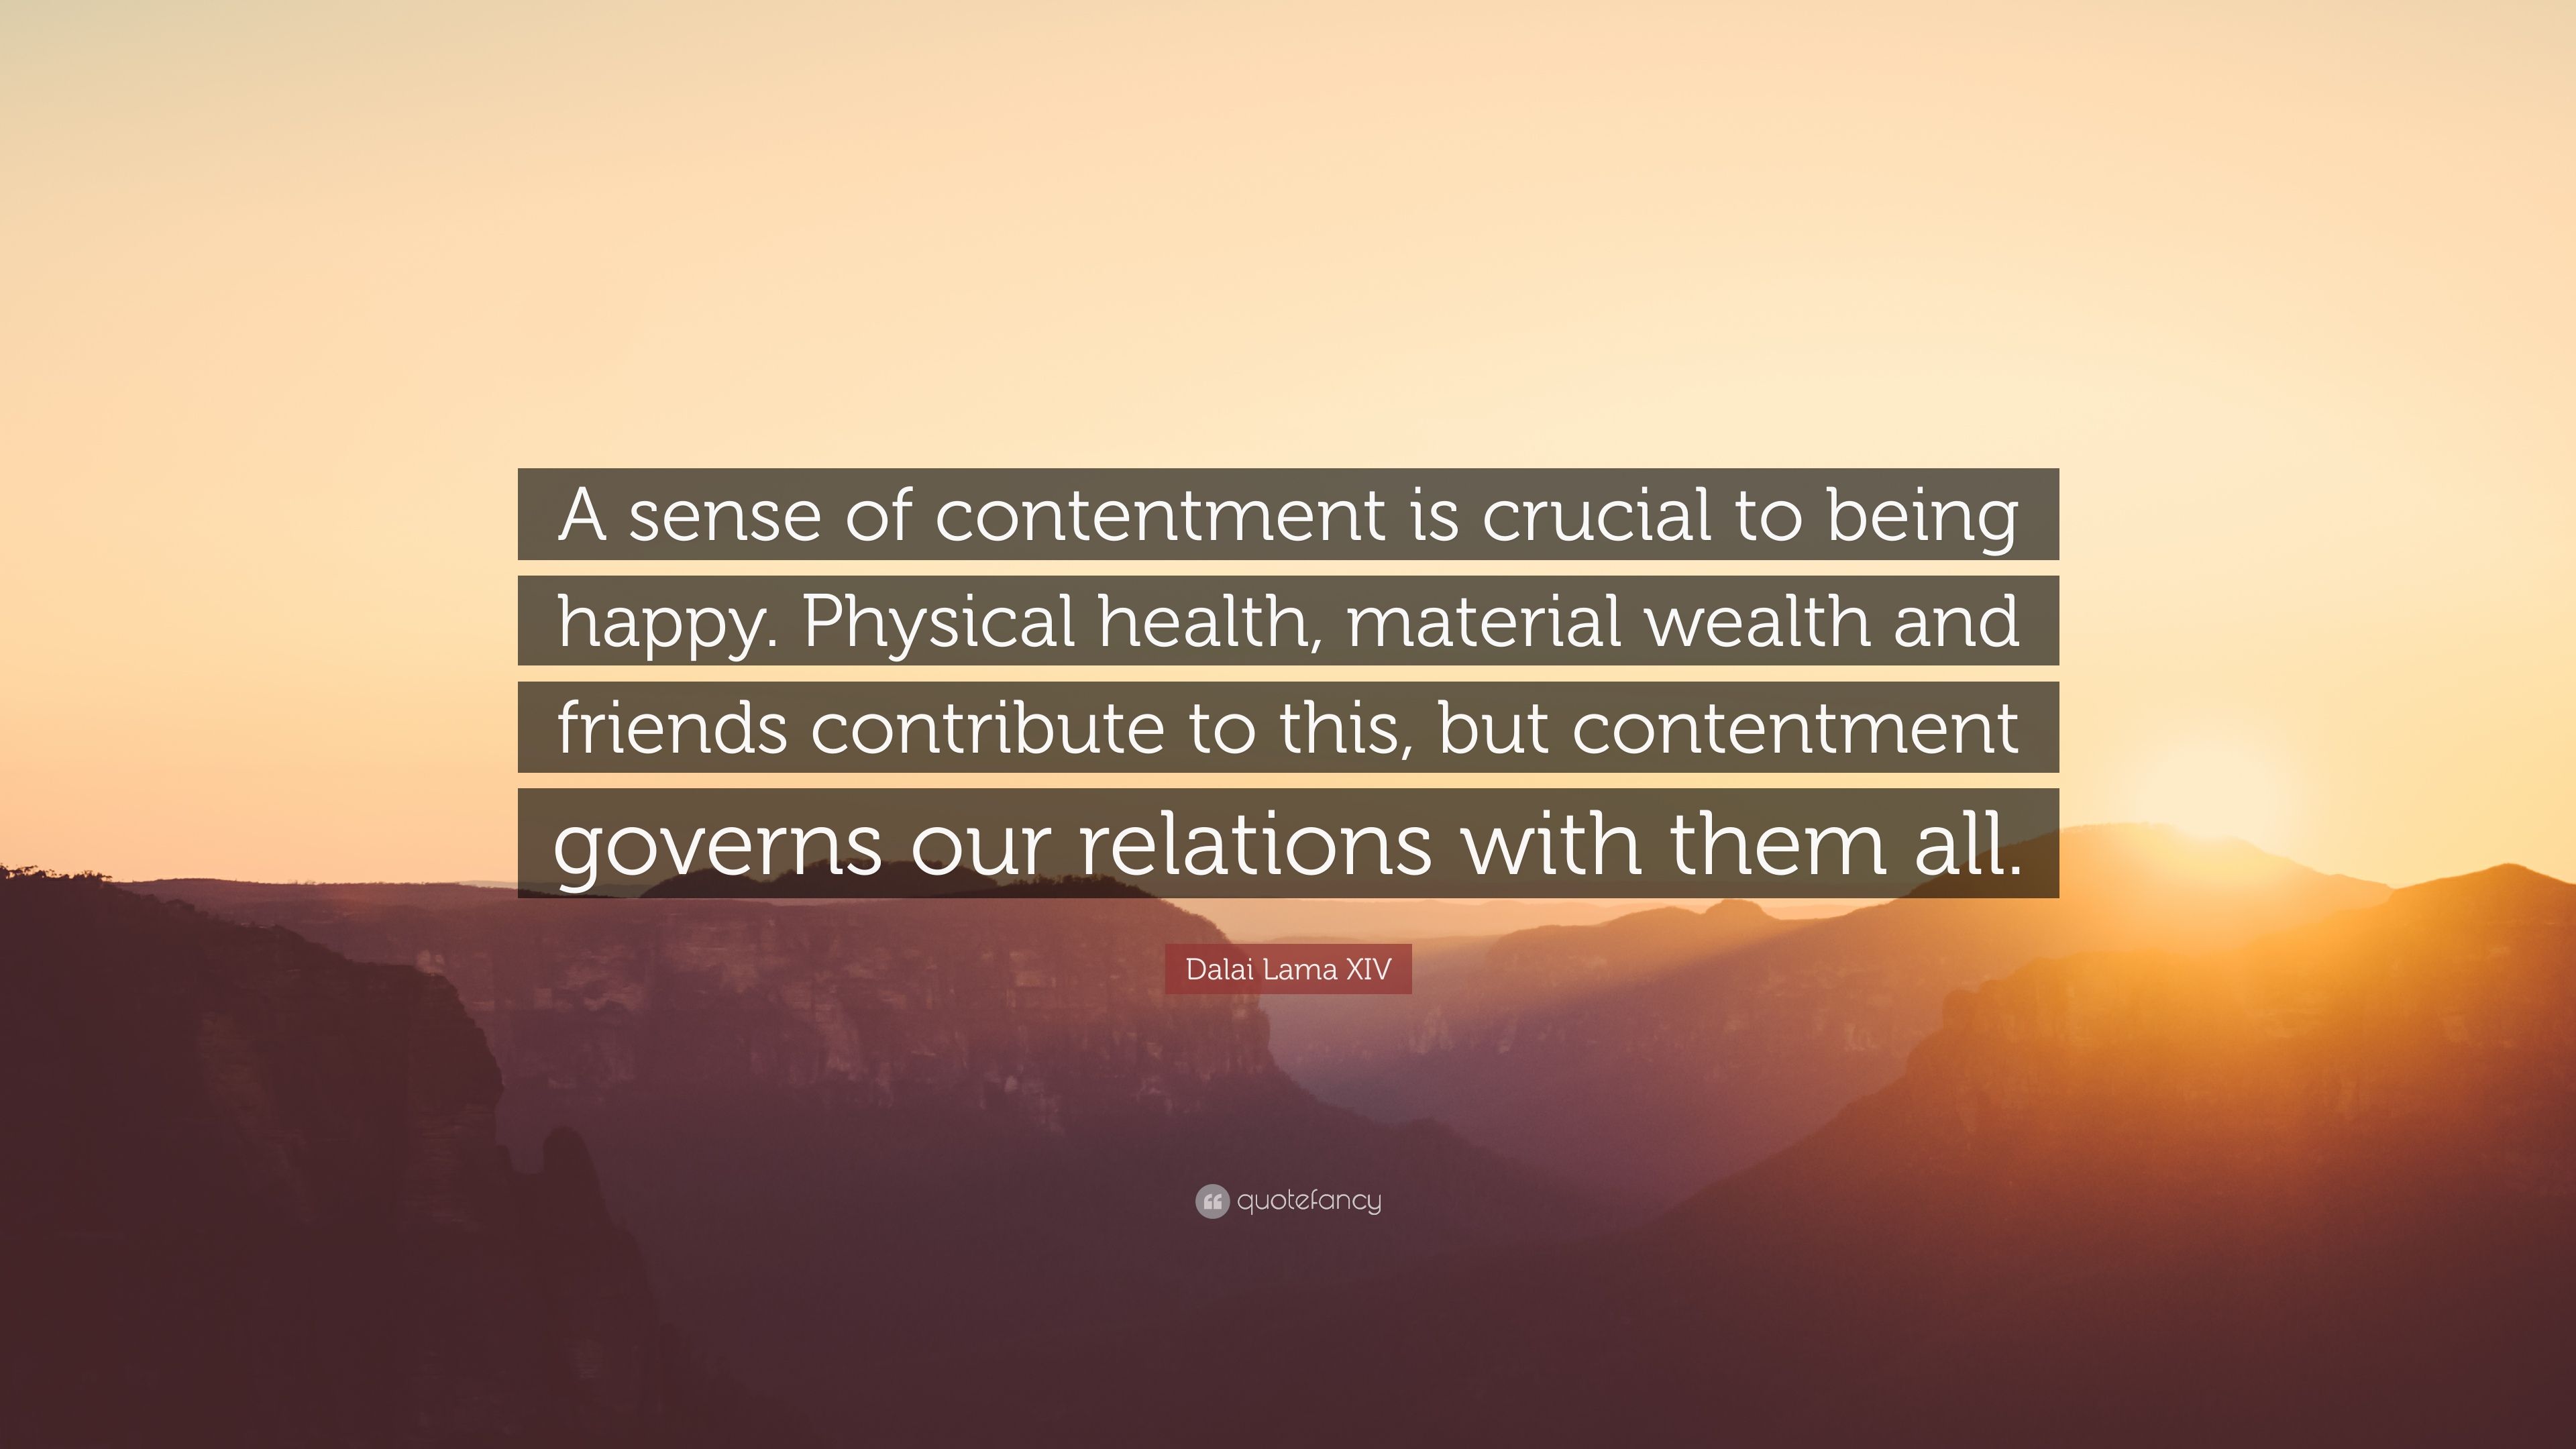 Dalai Lama Xiv Quote A Sense Of Contentment Is Crucial To Being